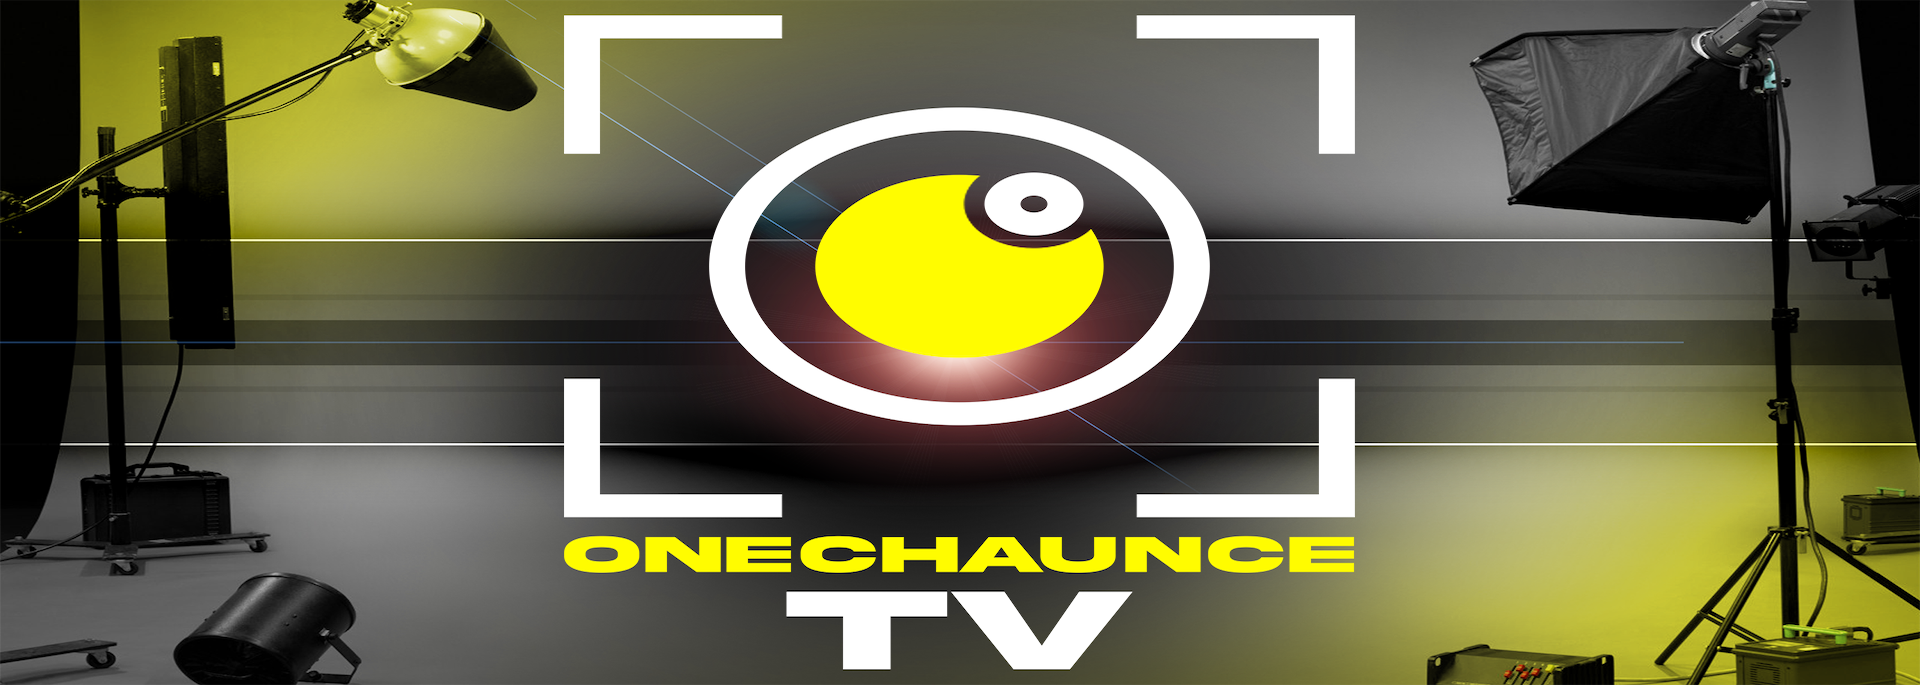 One Chaunce TV channel